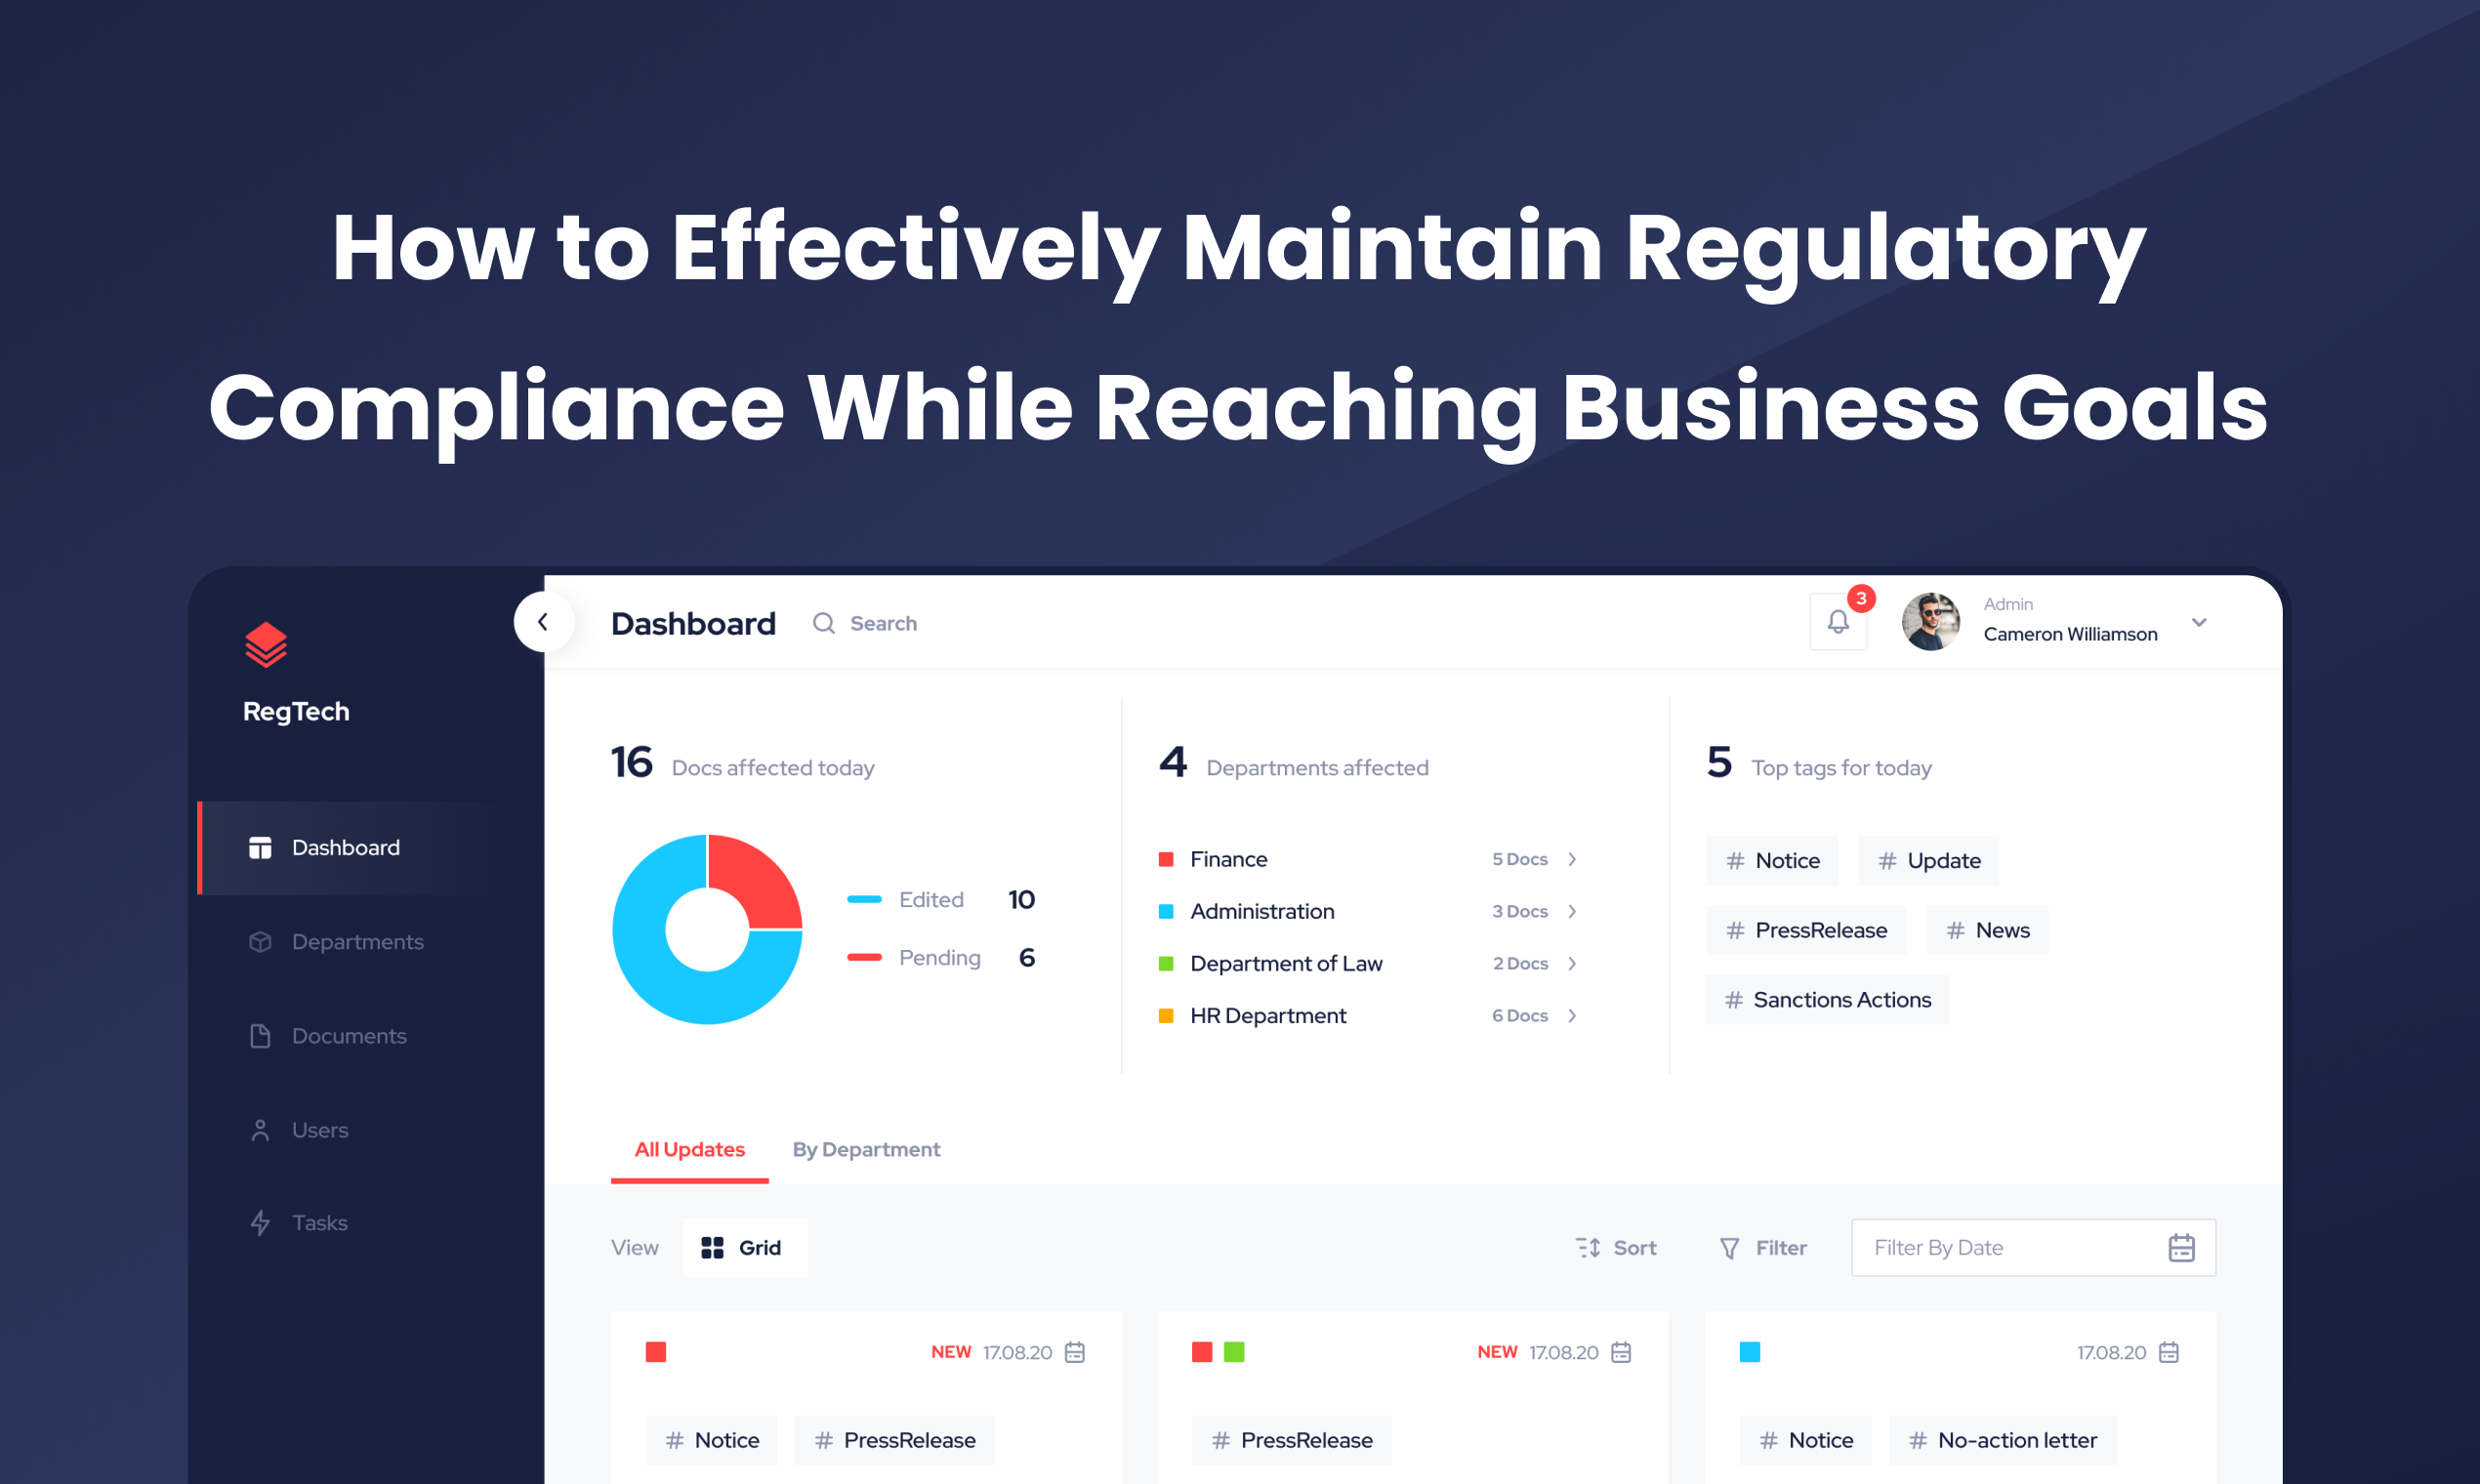 How to effectively maintain regulatory compliance while reaching business goals